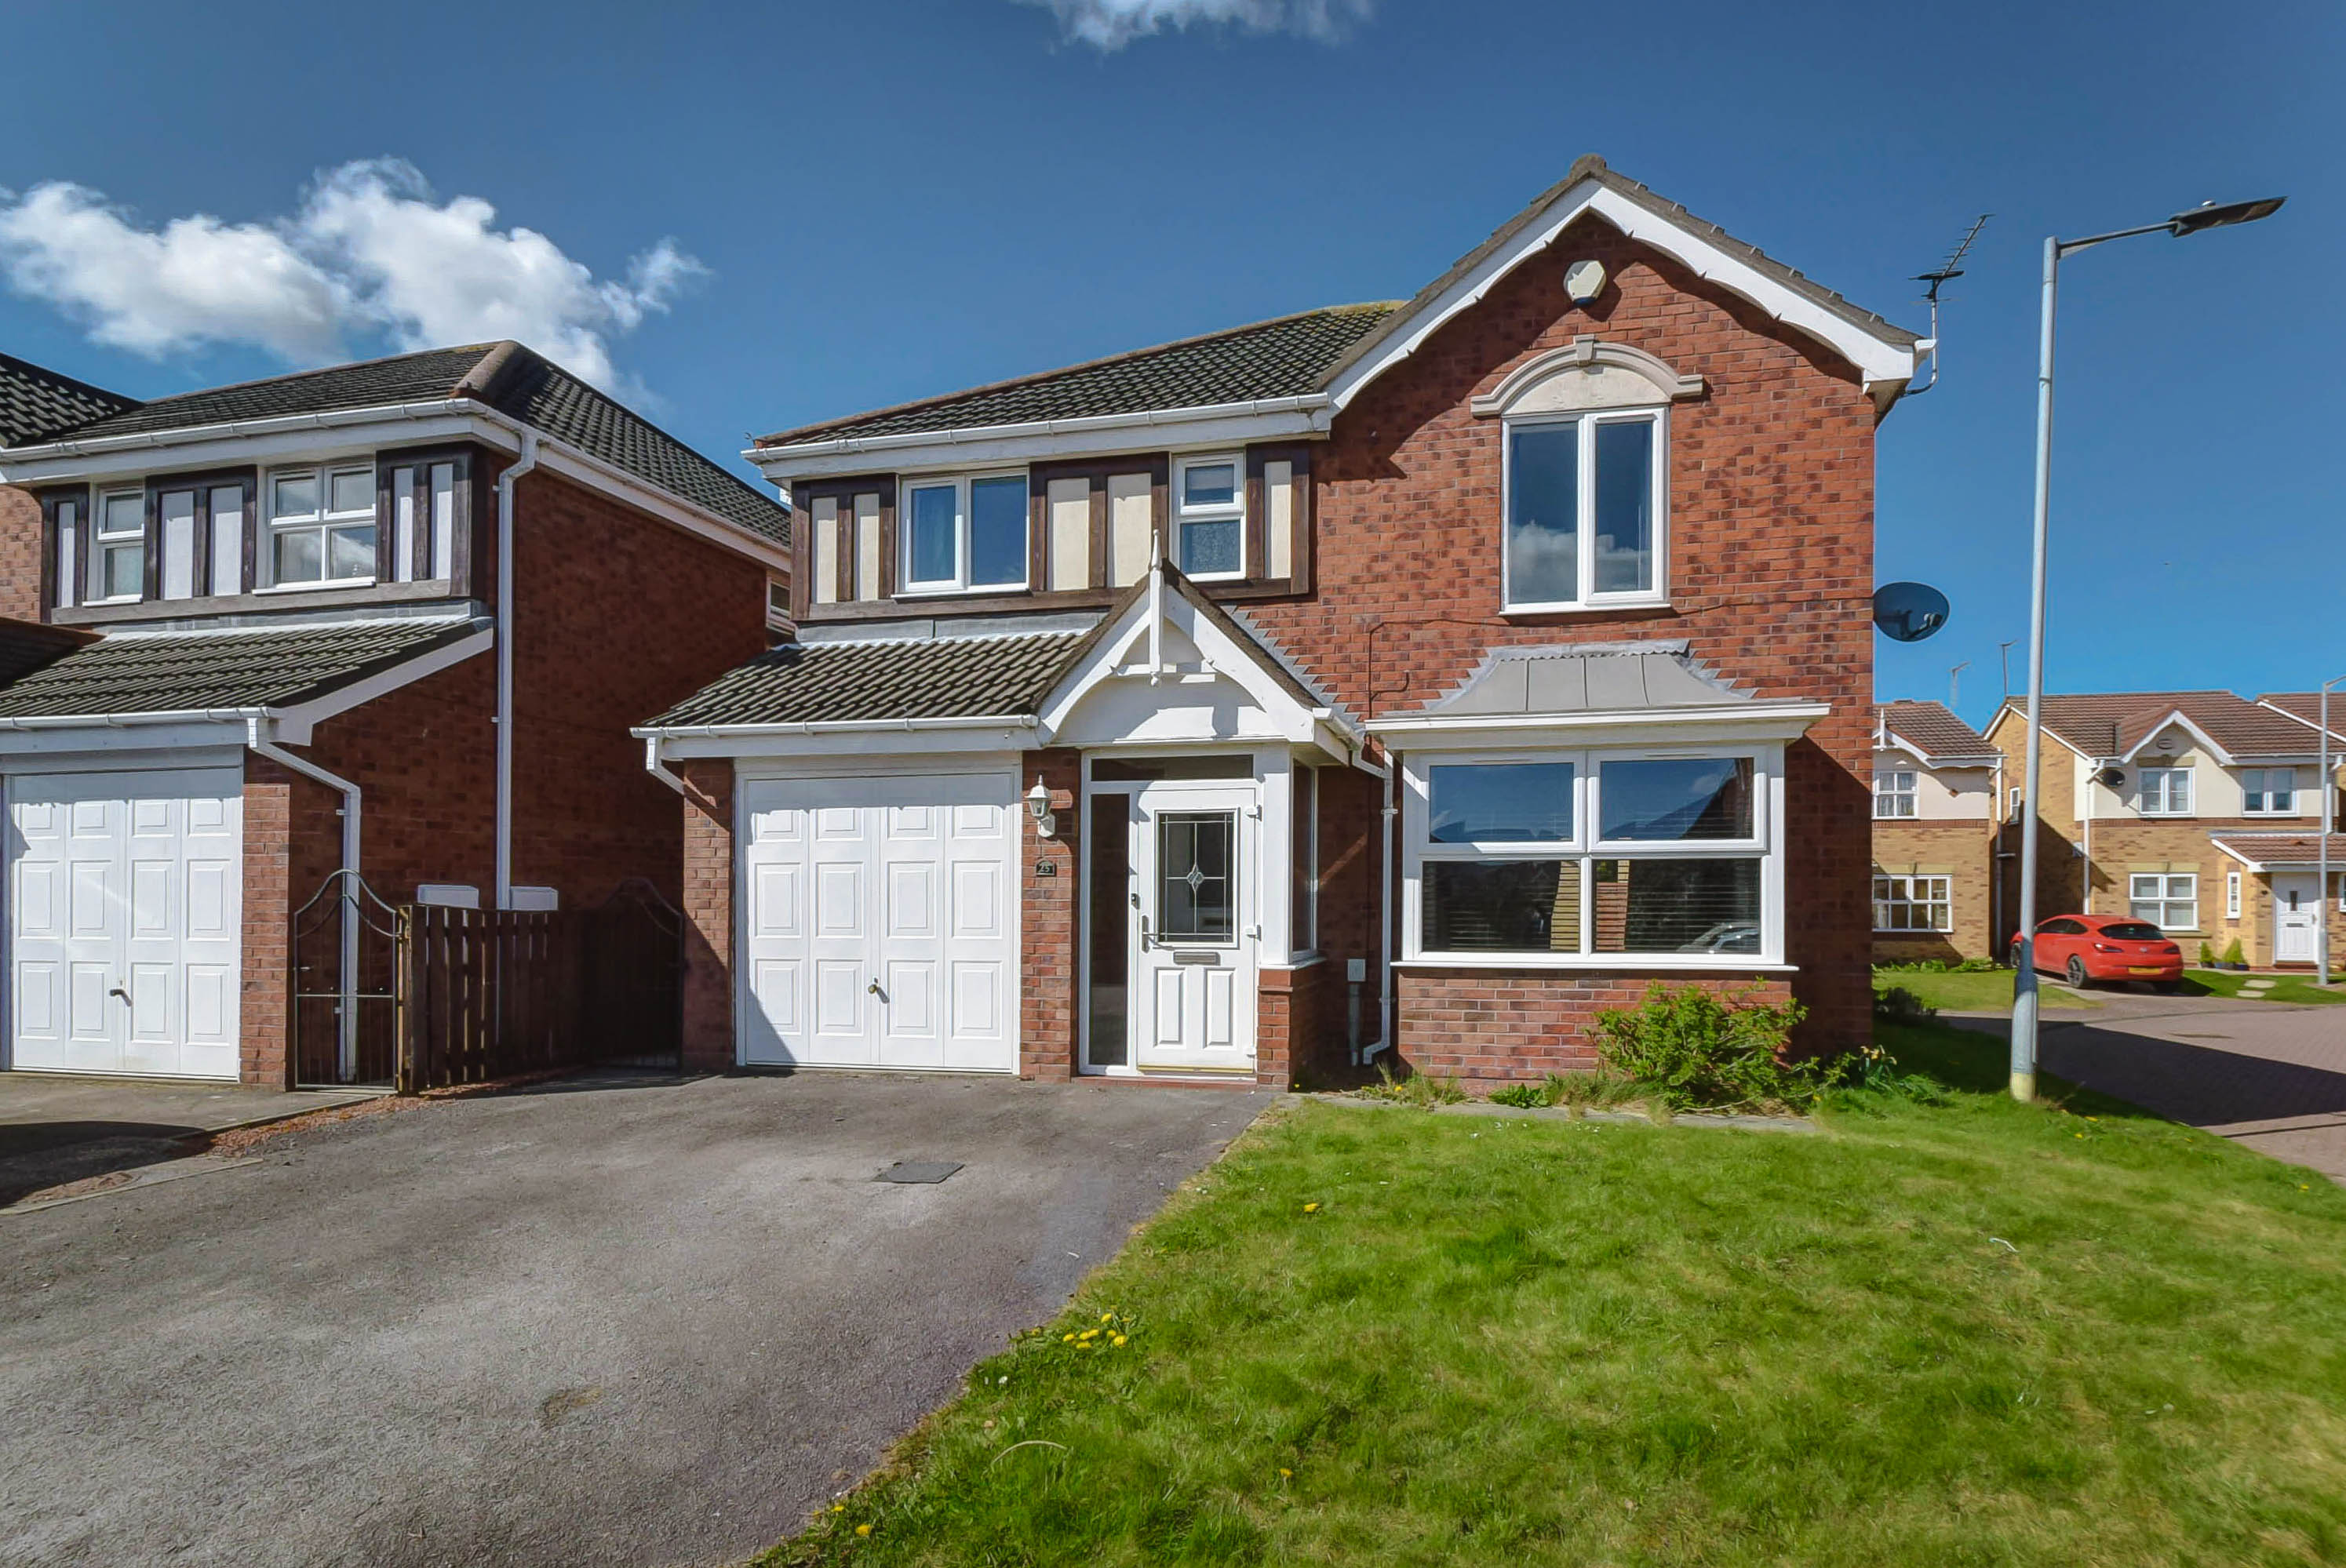 Soverign Way, Kingswood £0 Sold by Lets Sell